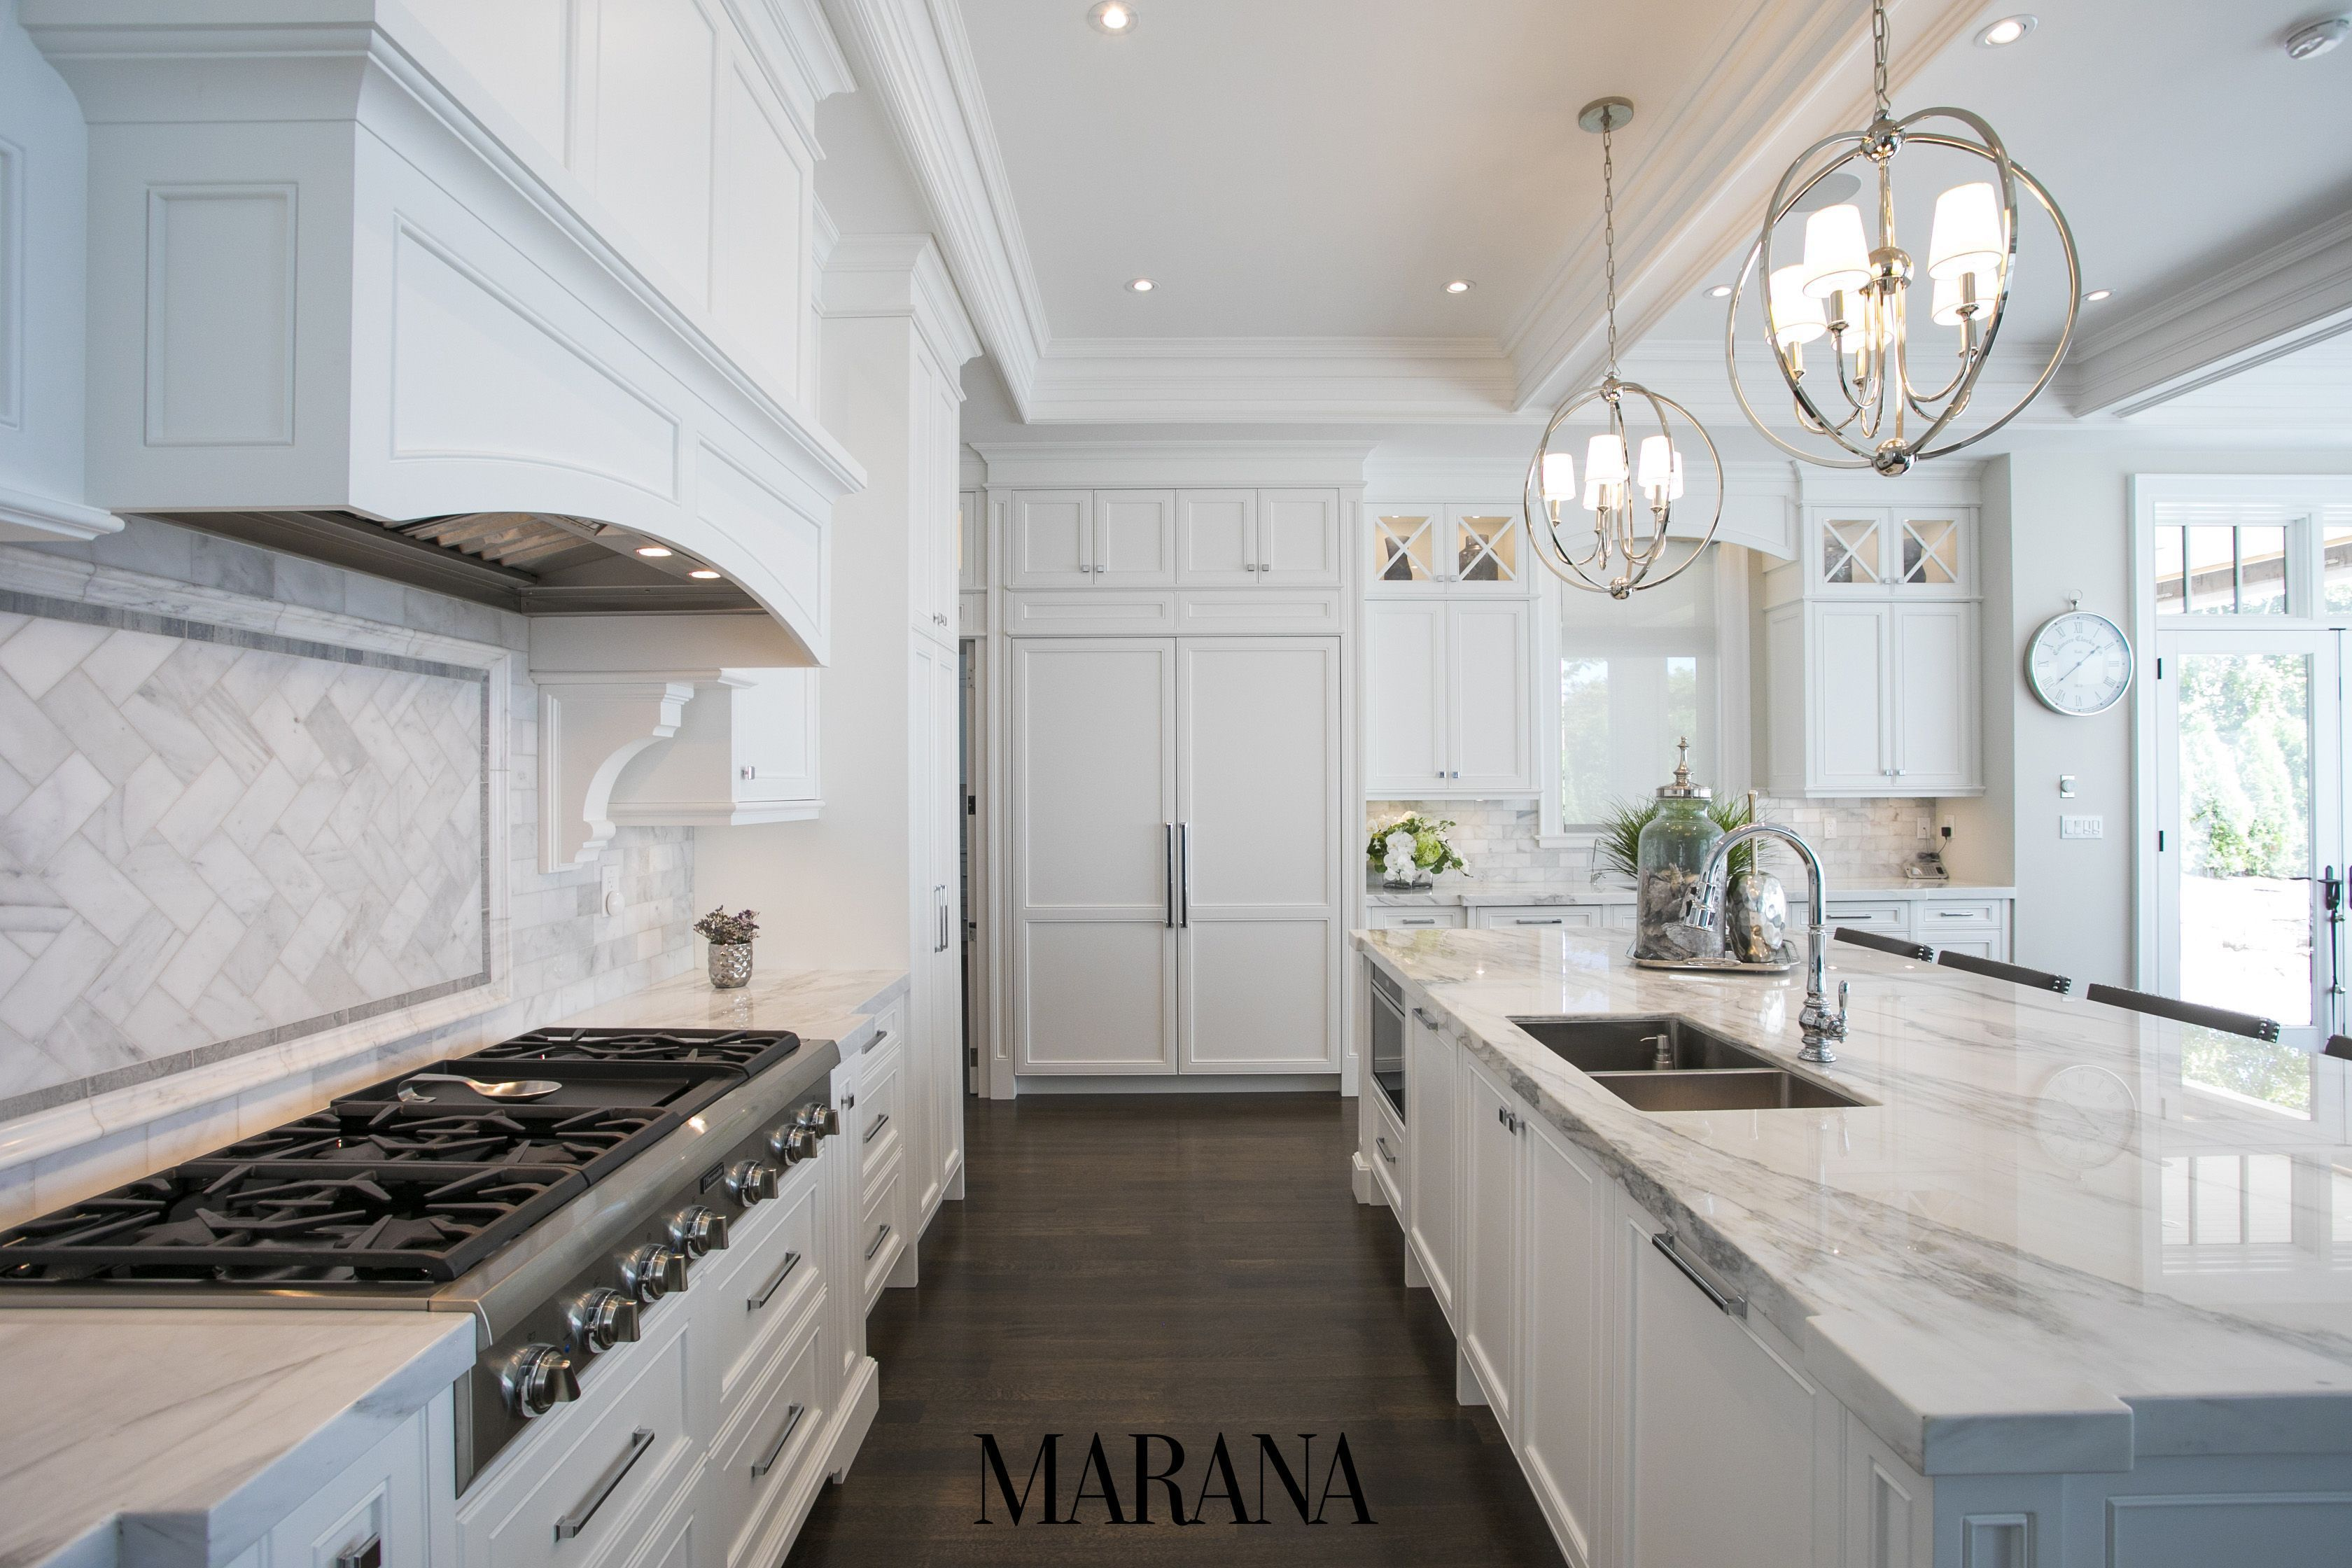 This Luxurious Kitchen Design Is Fit For A Queen Burlington Ontario Cabinetry By Marana Kitchens Luxurykitchens Kitchende Kuchen Design Kuchendesign Design